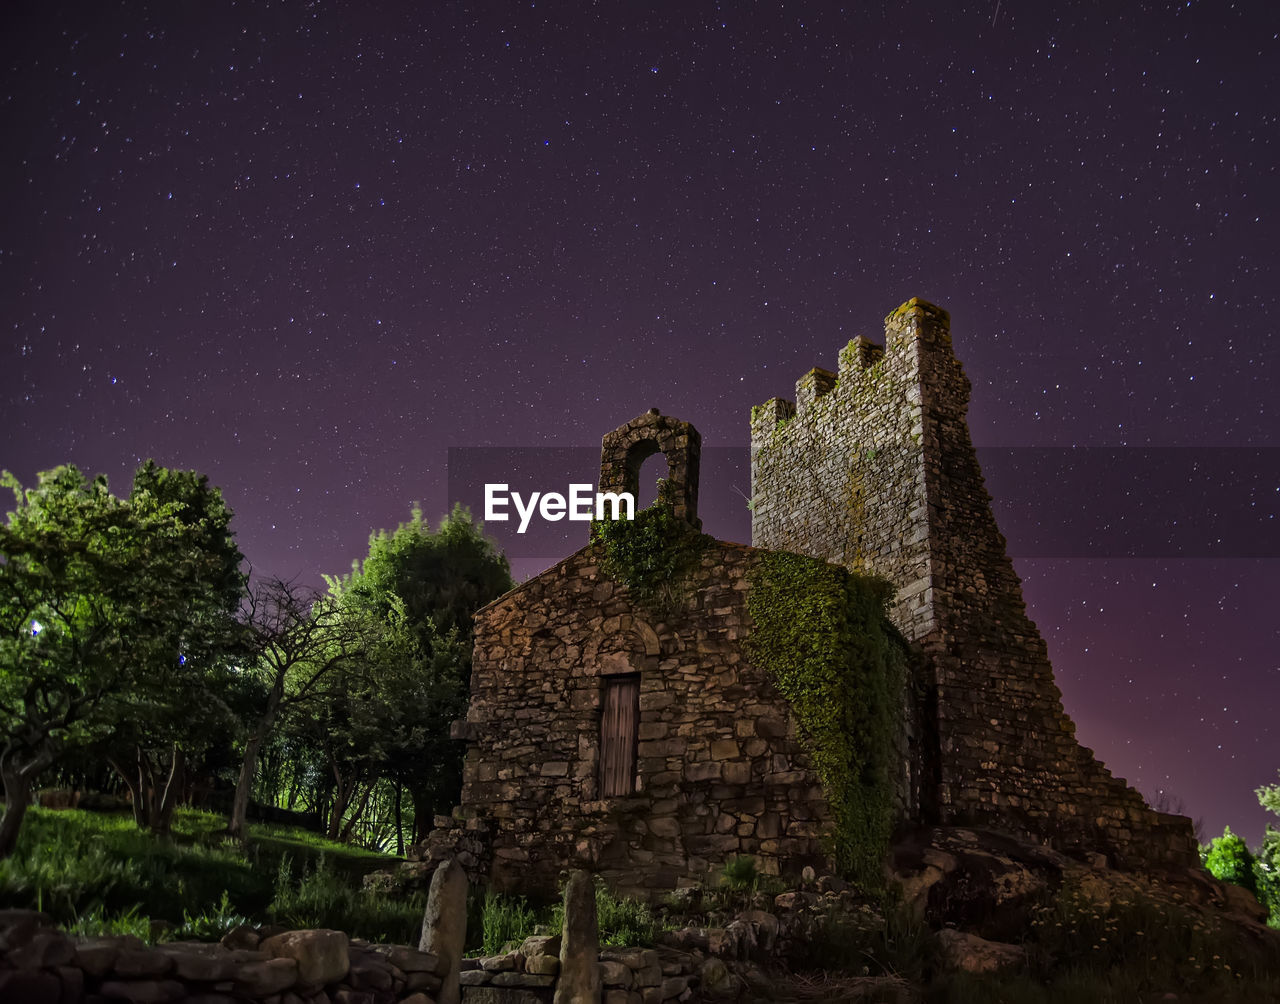 architecture, built structure, sky, building exterior, history, night, the past, star - space, building, old ruin, space, old, nature, low angle view, astronomy, no people, ancient, abandoned, ruined, tree, deterioration, outdoors